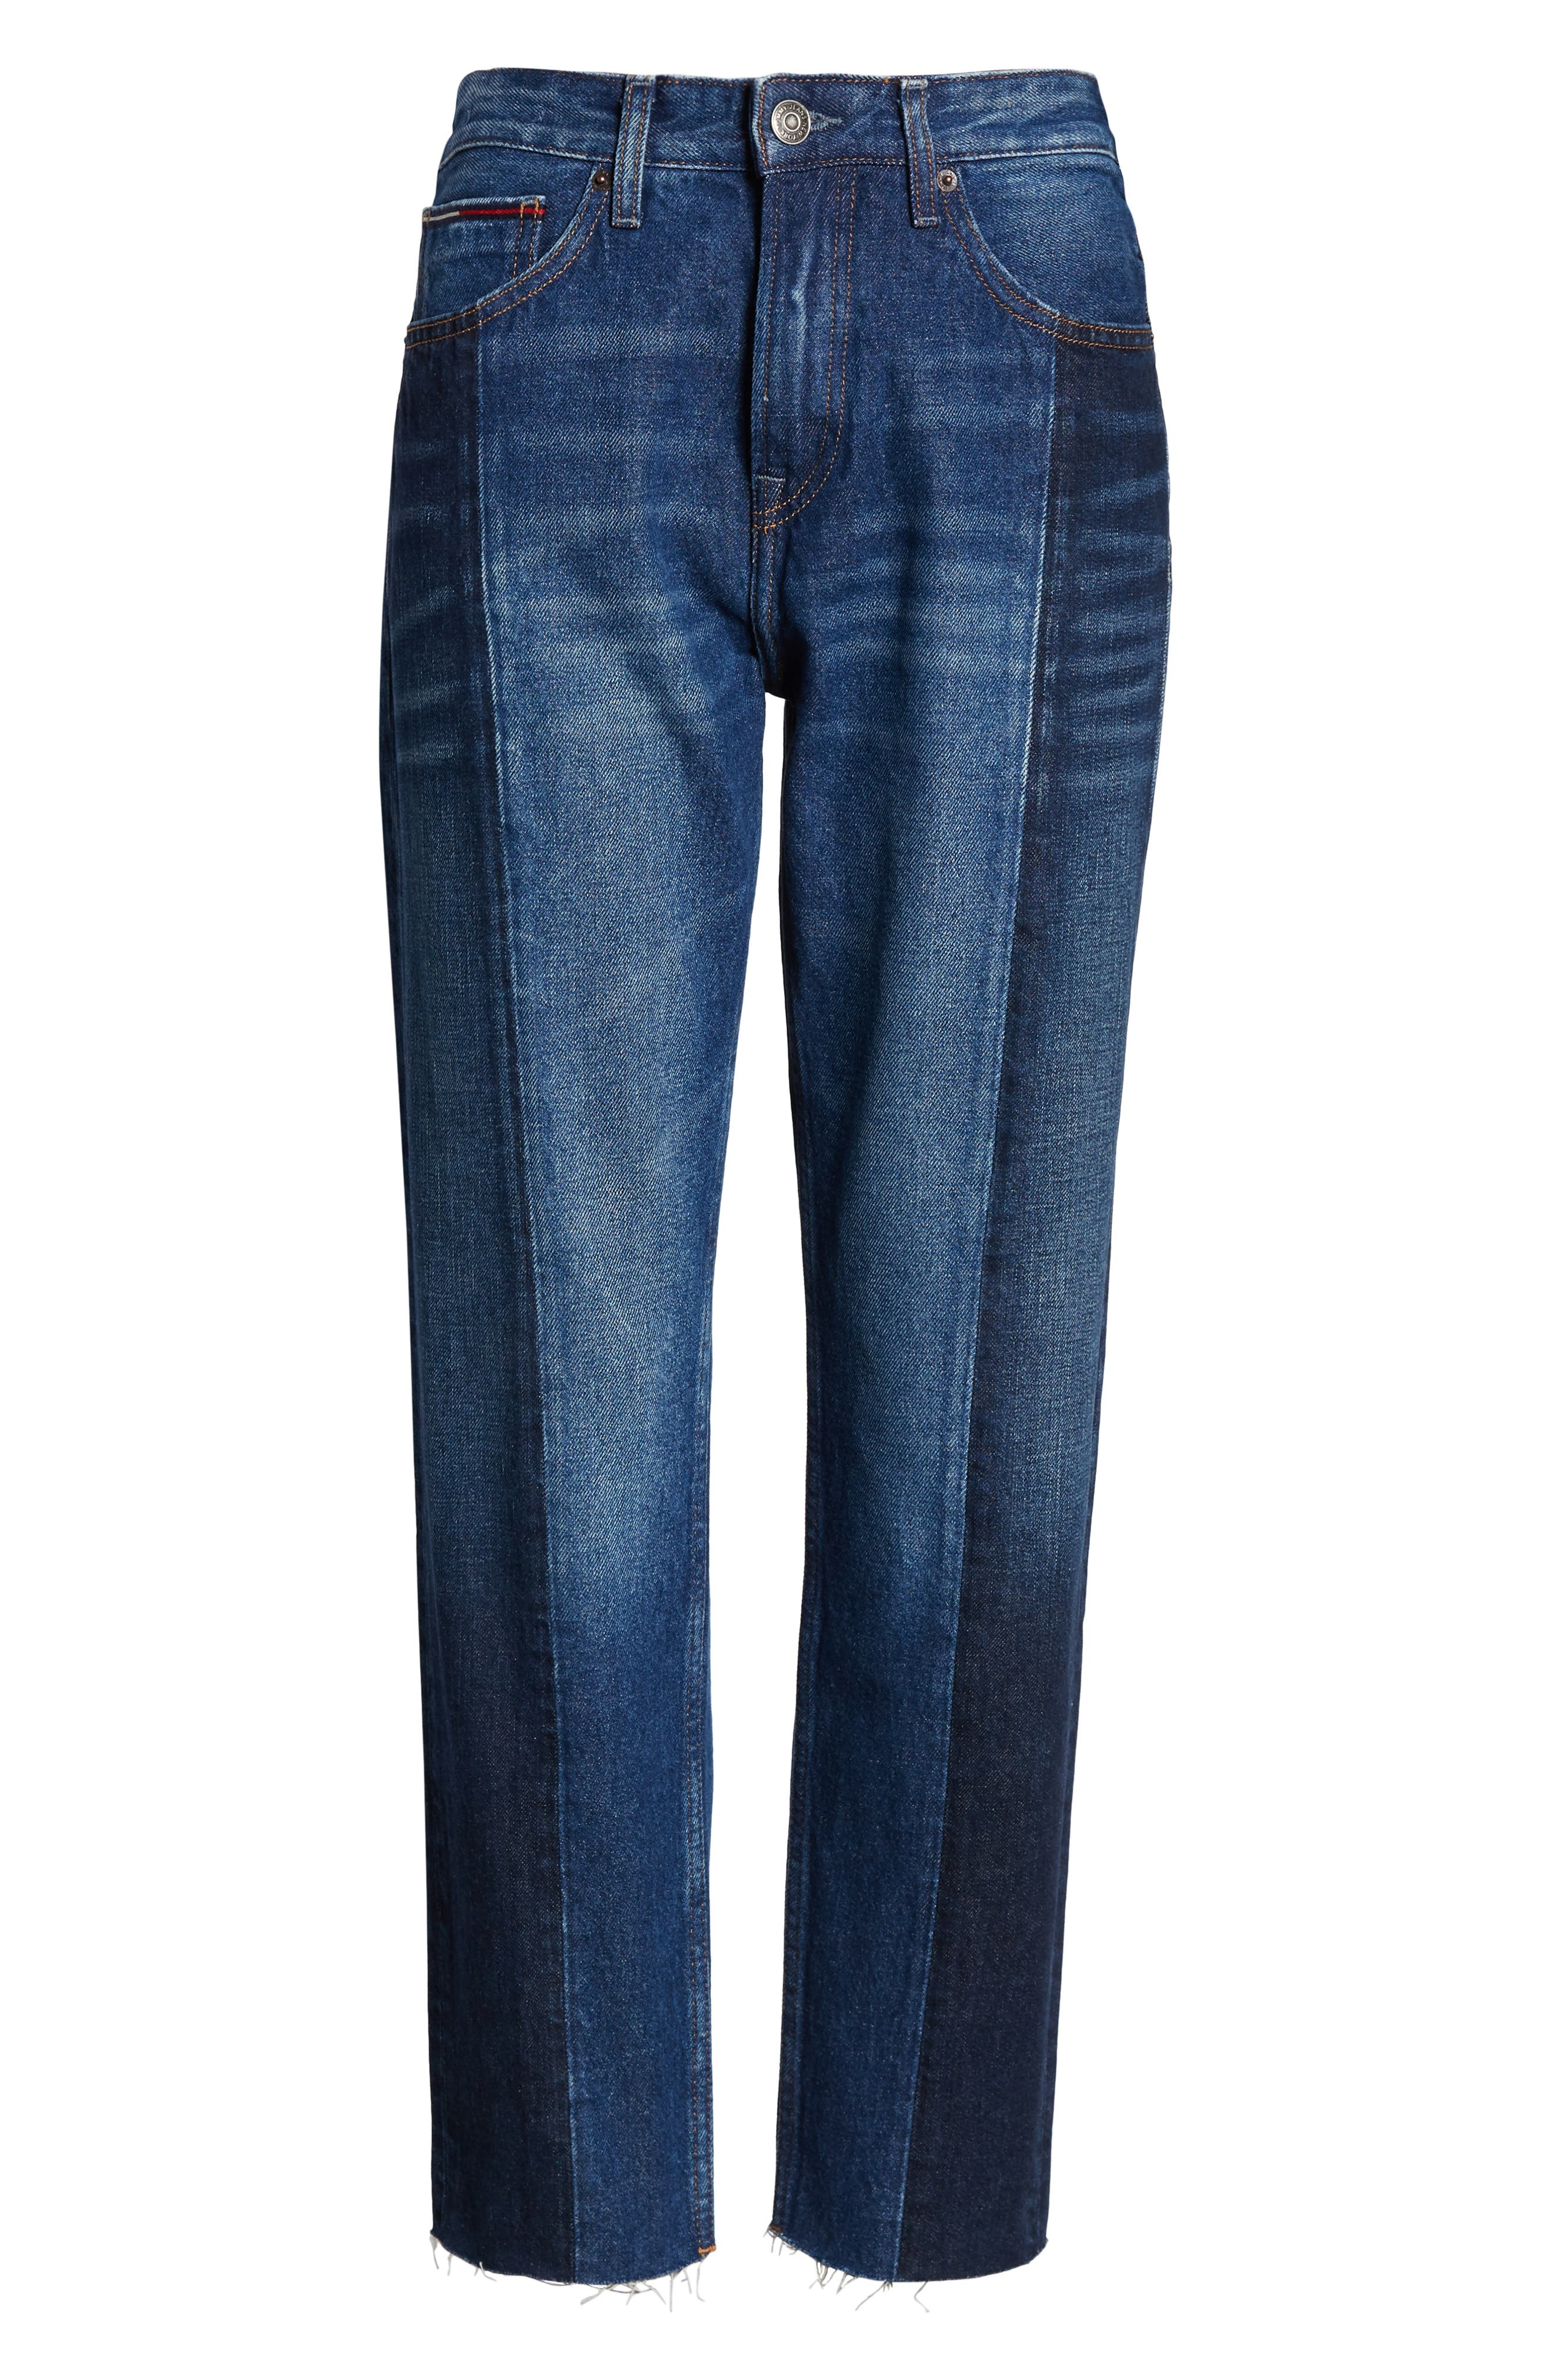 Izzy Paneled Slim Ankle Jeans,                             Alternate thumbnail 7, color,                             TOMMY JEAN NEW COMBO